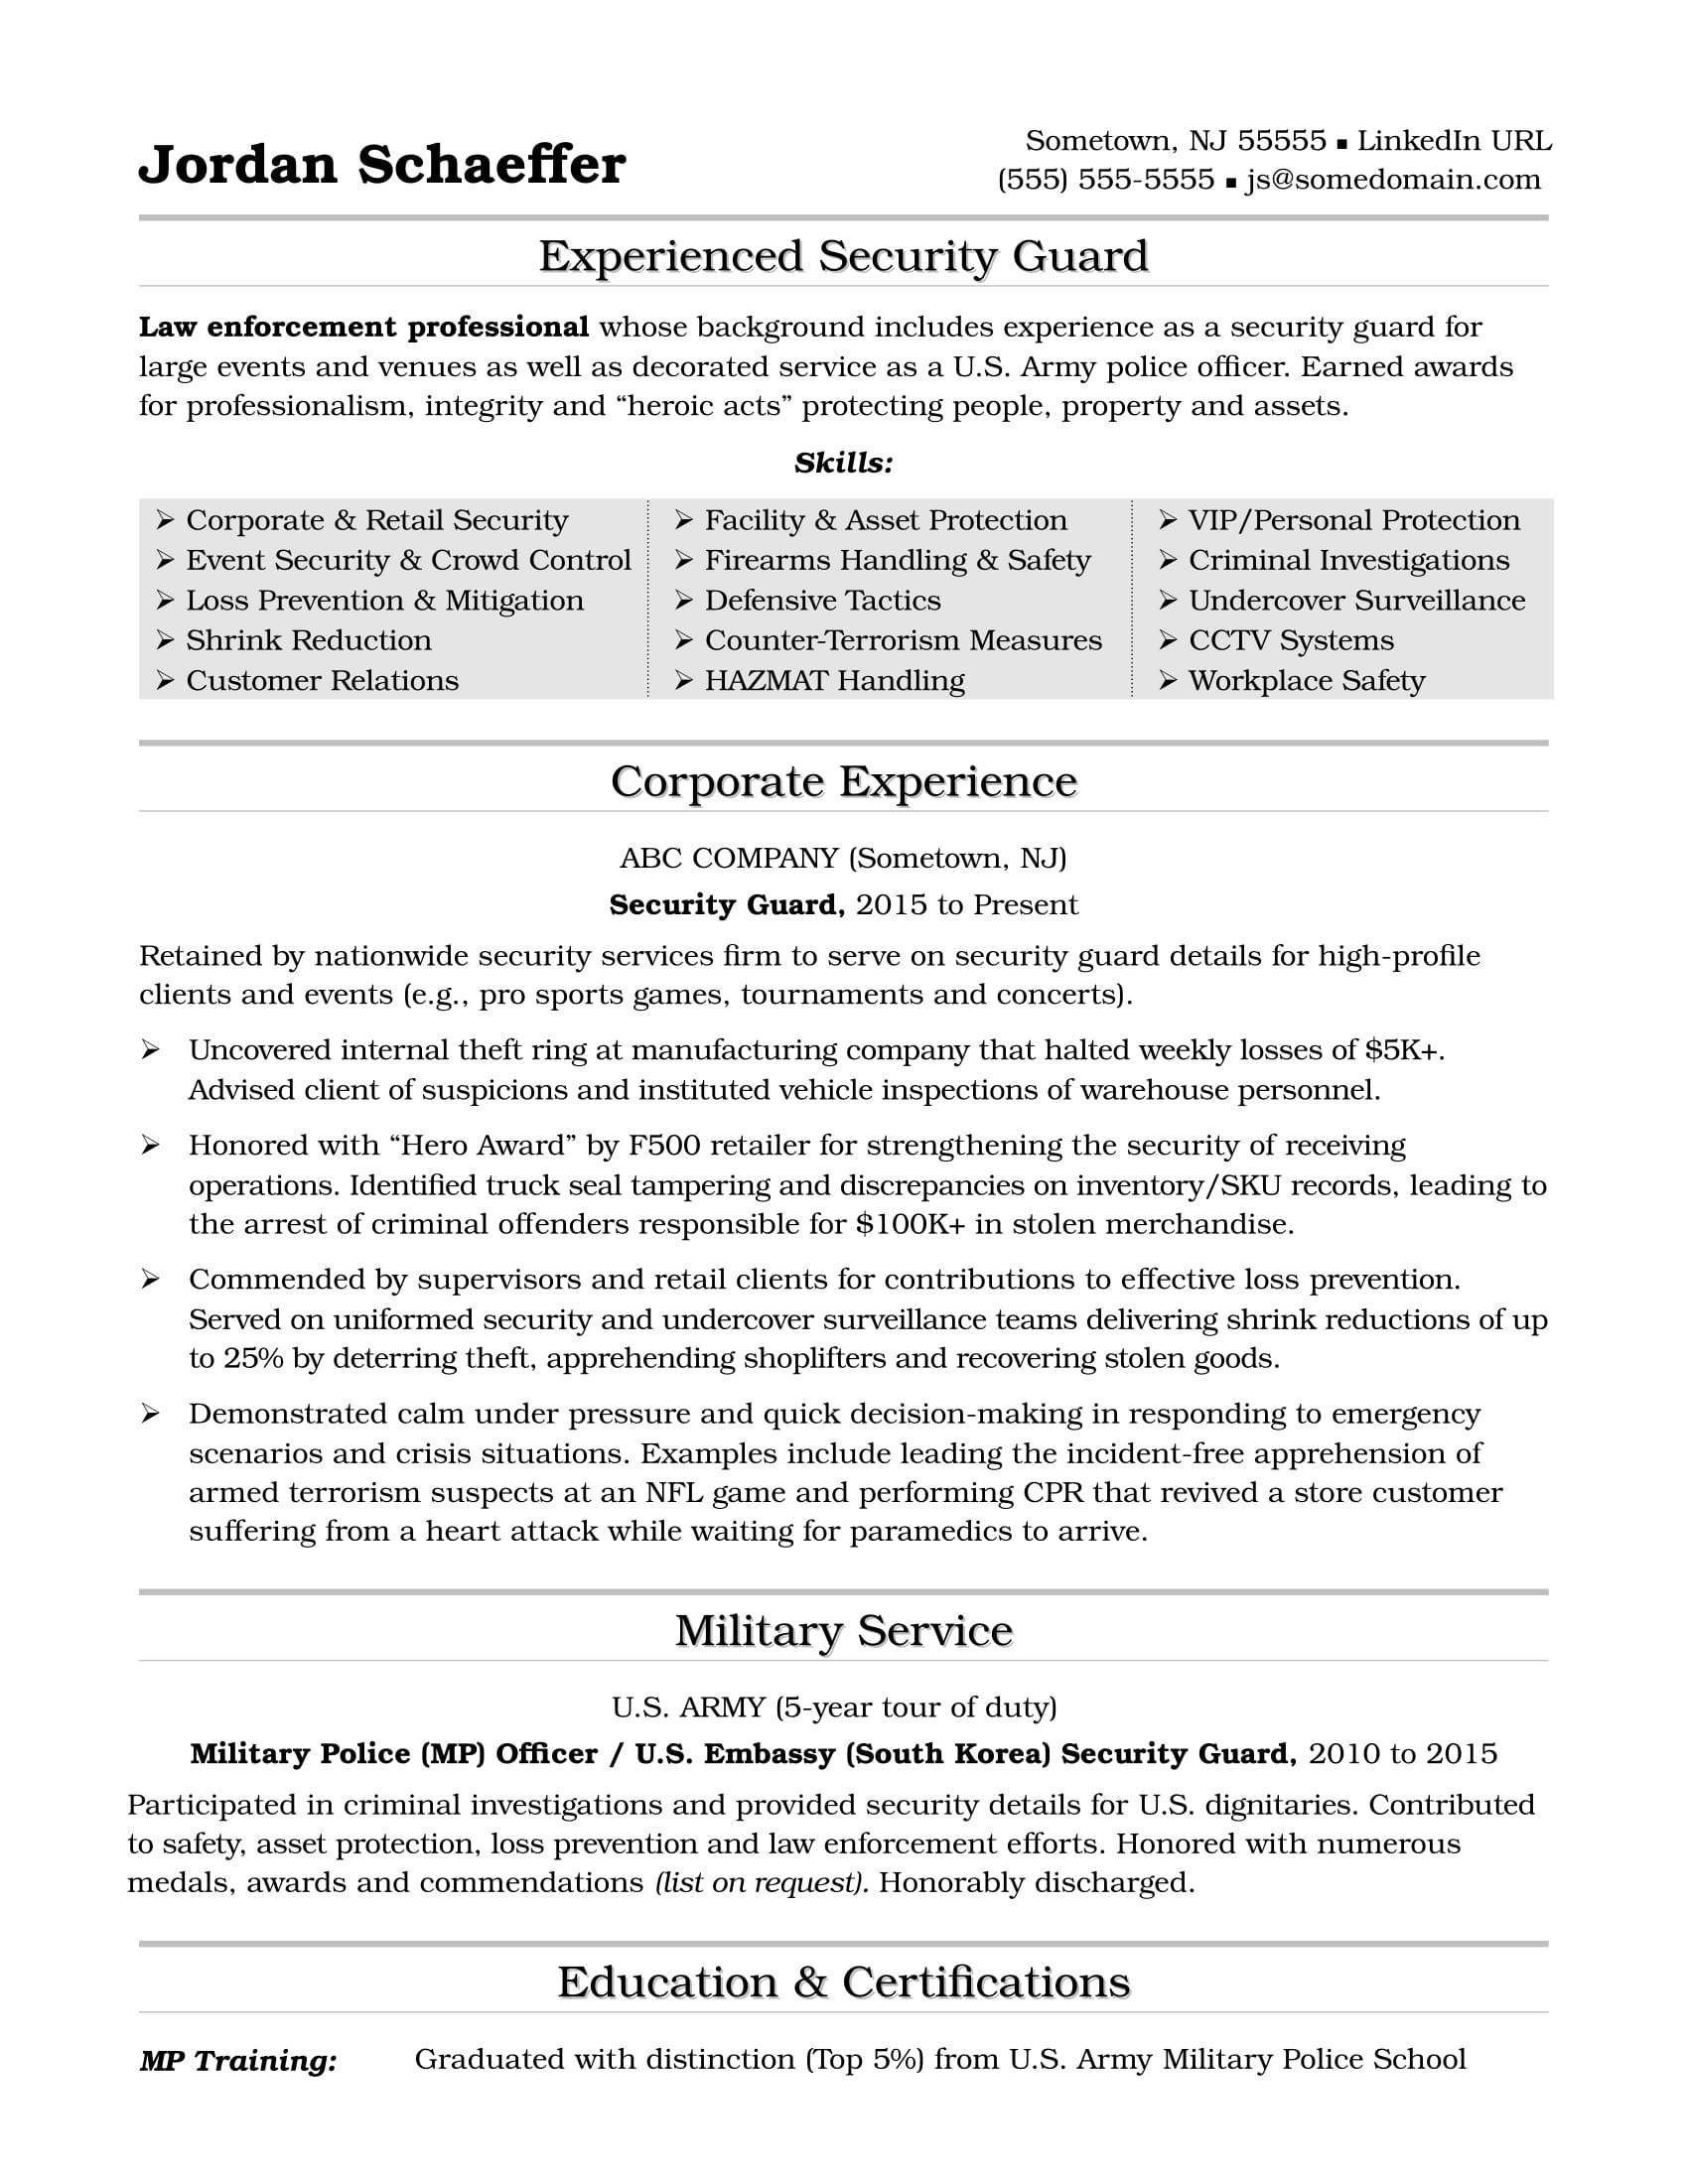 Security Resume Sample Security Guard Resume Sample  Sample Resume And Career Advice